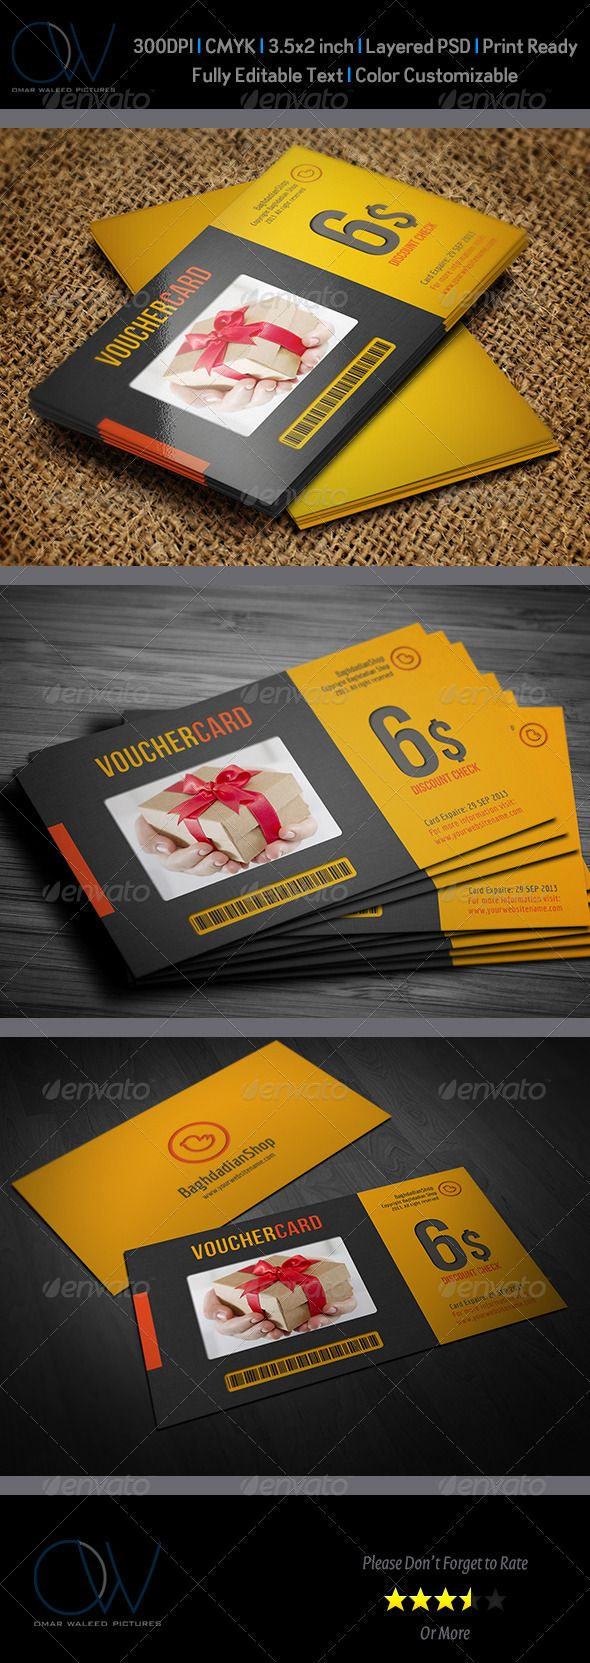 Gift / Voucher Card Template PSD   Buy and Download: http://graphicriver.net/item/gift-voucher-card-vol-2/3691337?WT.ac=category_thumb&WT.z_author=omar_almudaries&ref=ksioks